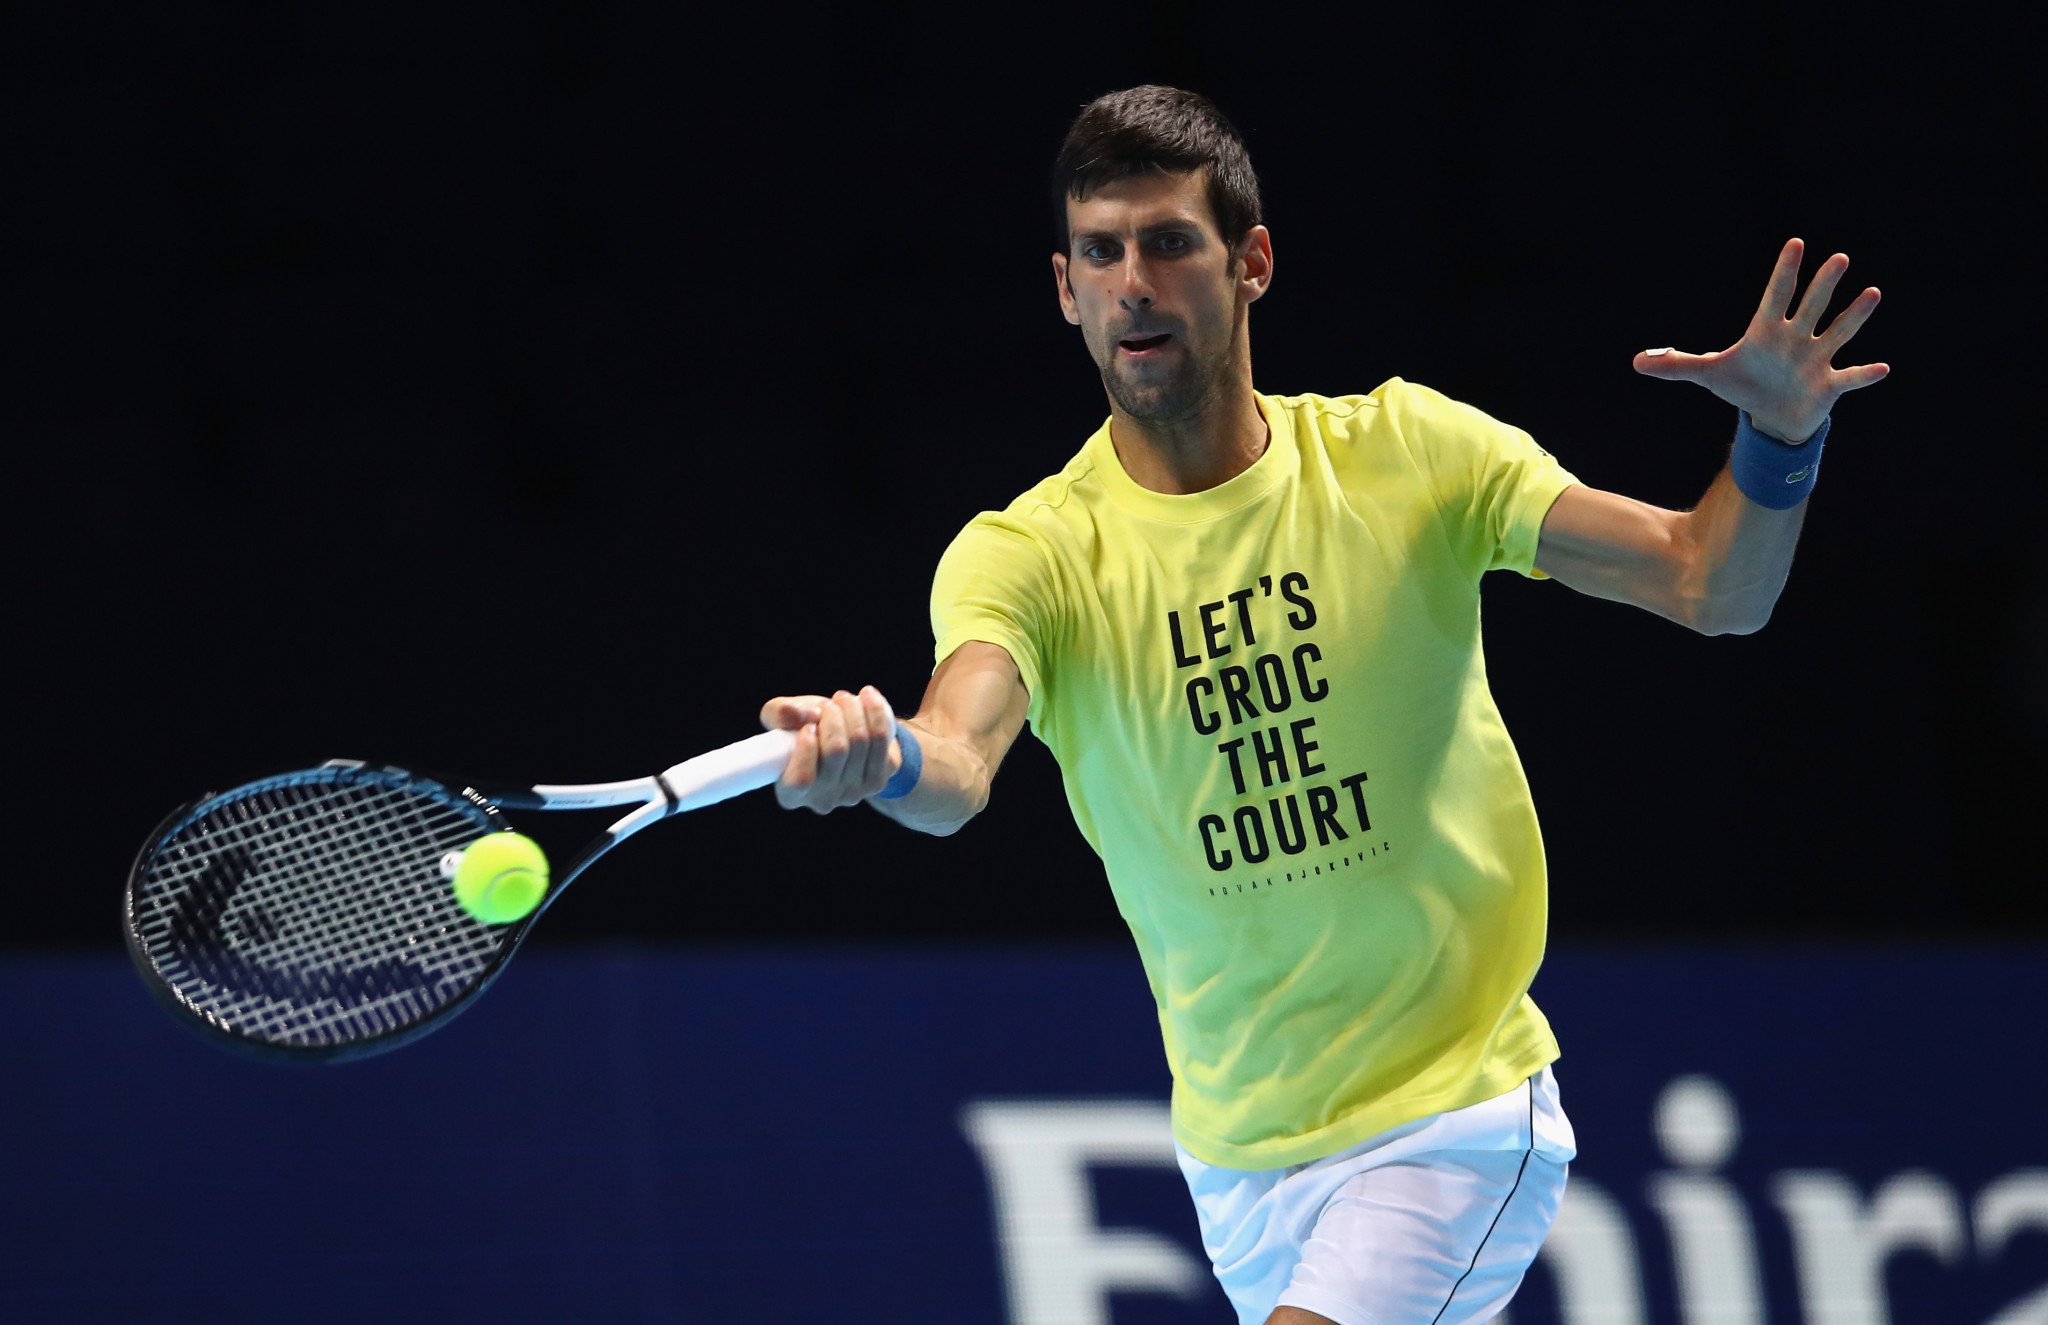 World number one Djokovic bids for sixth ATP Finals title